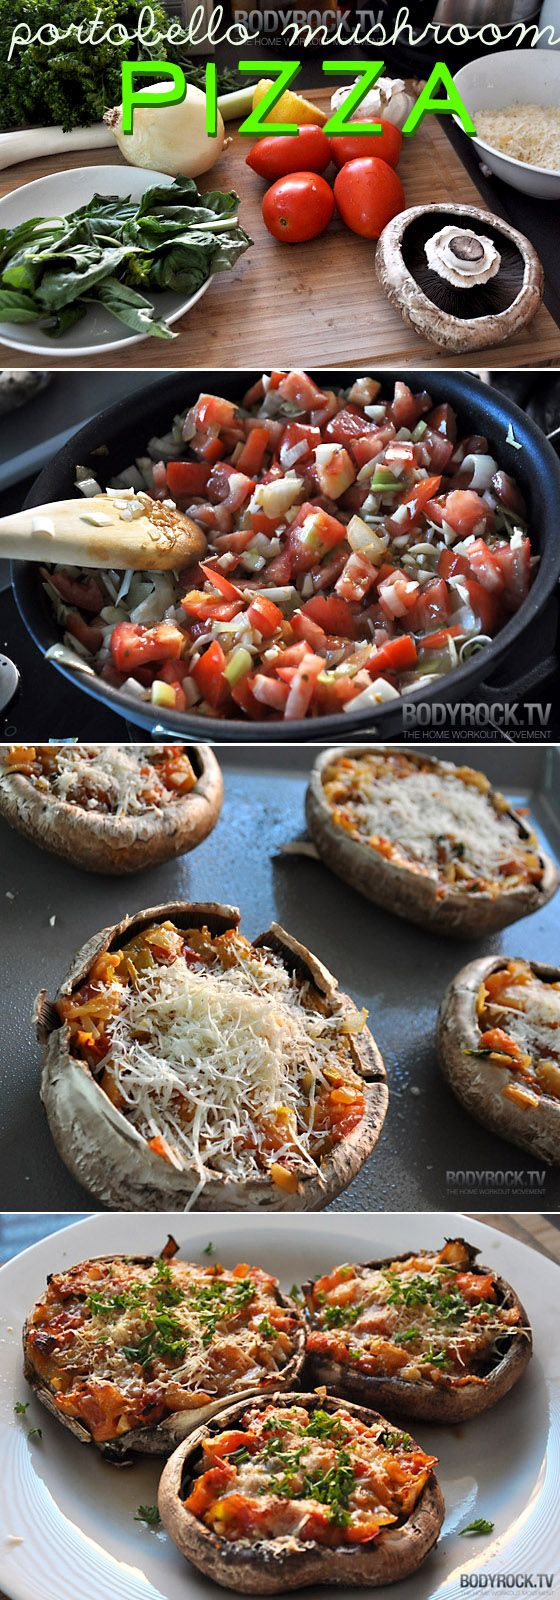 Portobello mushroom pizzasPizza Recipe, Portobello Mushroom Pizza, Food, Portobello Mushrooms Pizza, Healthy Pizza, Mushroompizza, Vegan Cheese, Portabello Mushrooms, Portobello Pizza